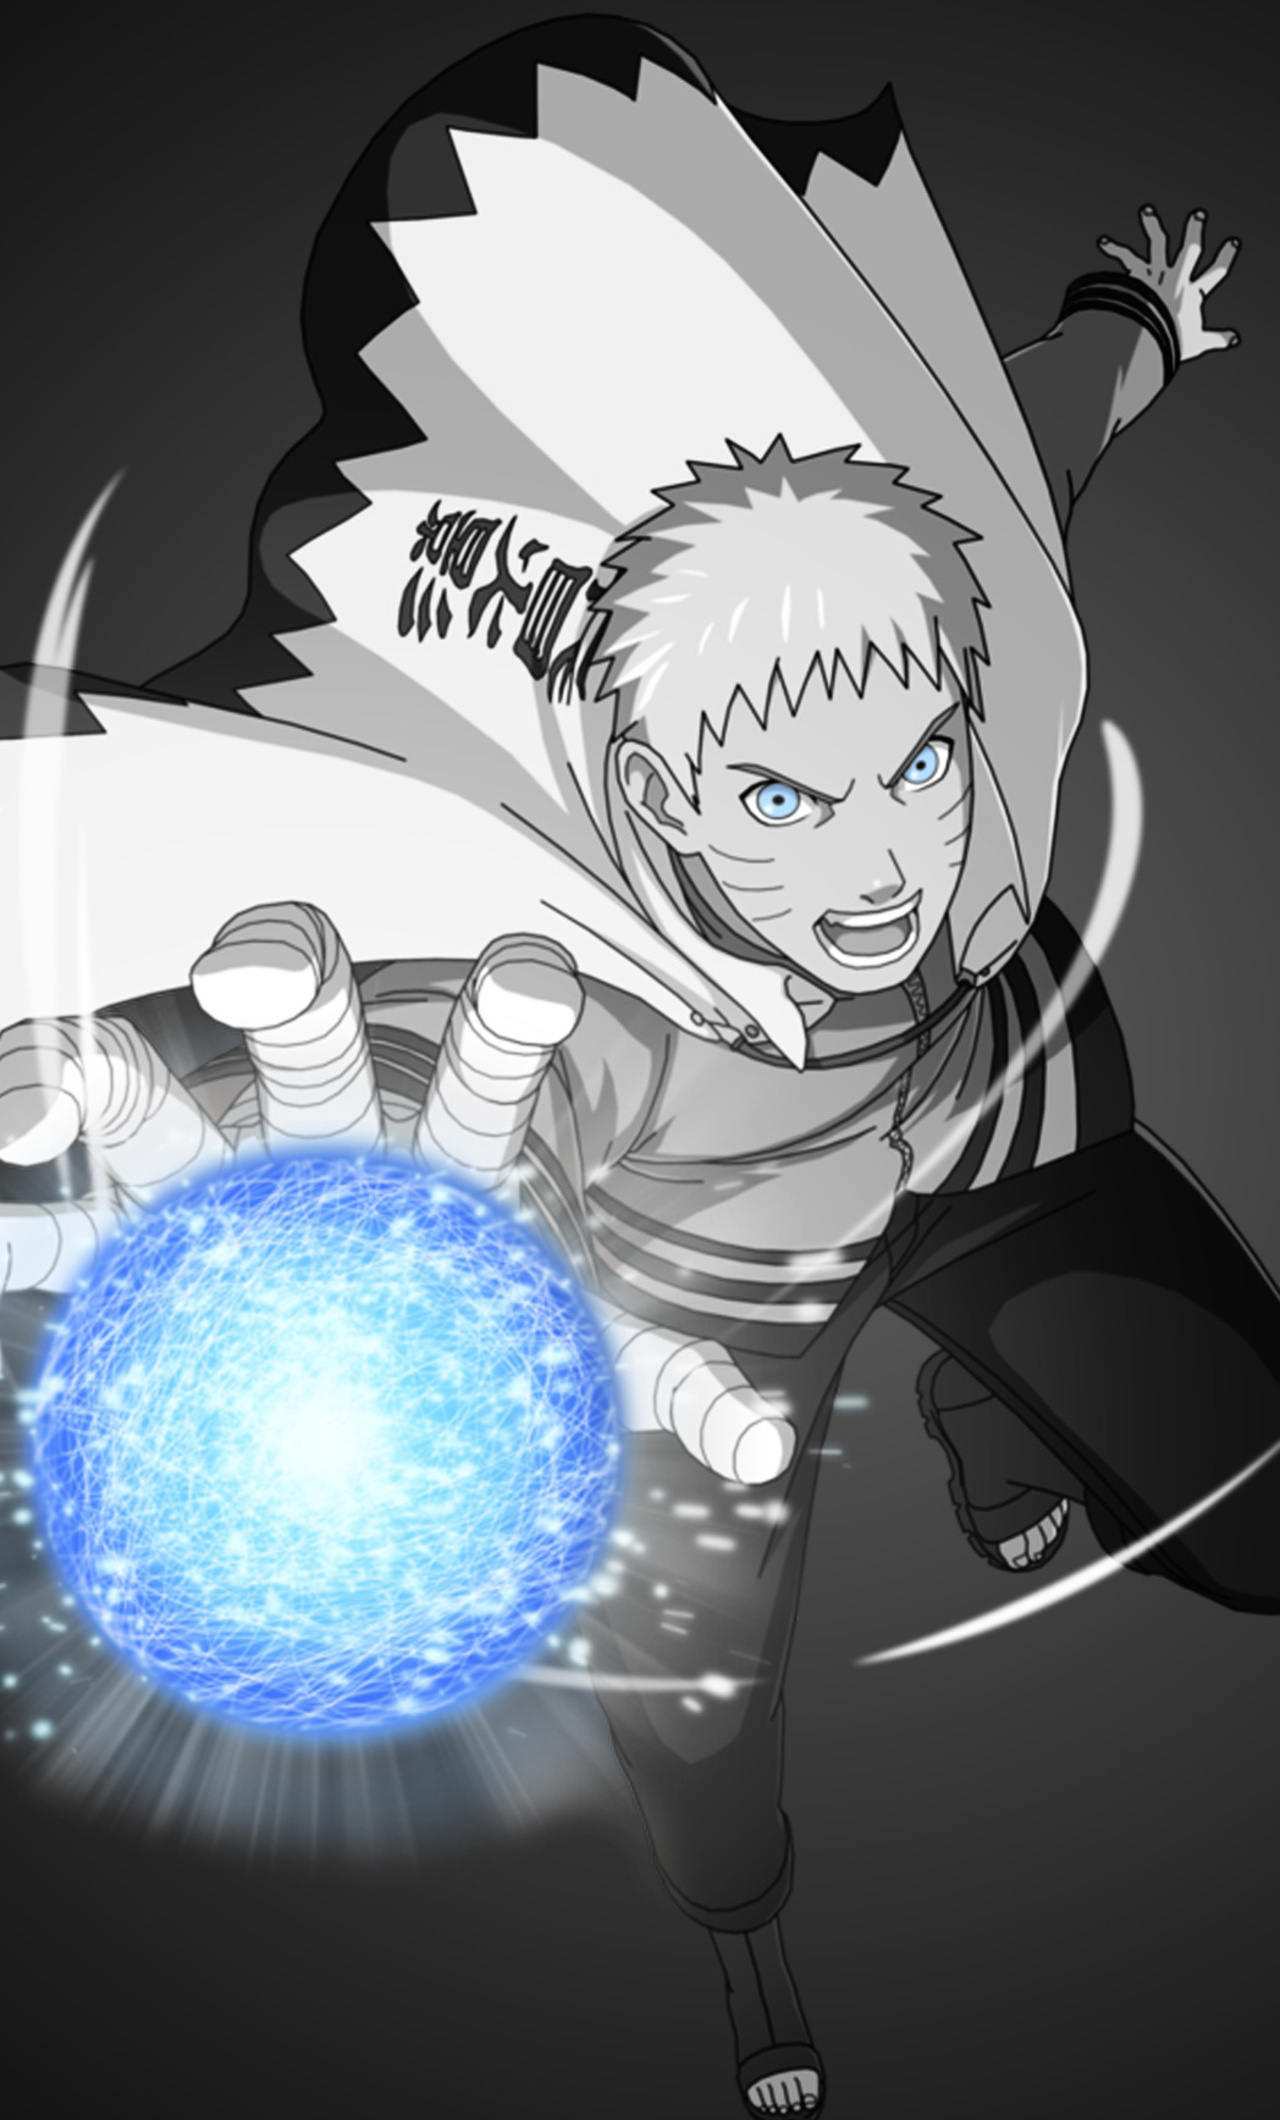 1280x2120 Naruto Rasengan IPhone 6 HD 4k Wallpapers Images